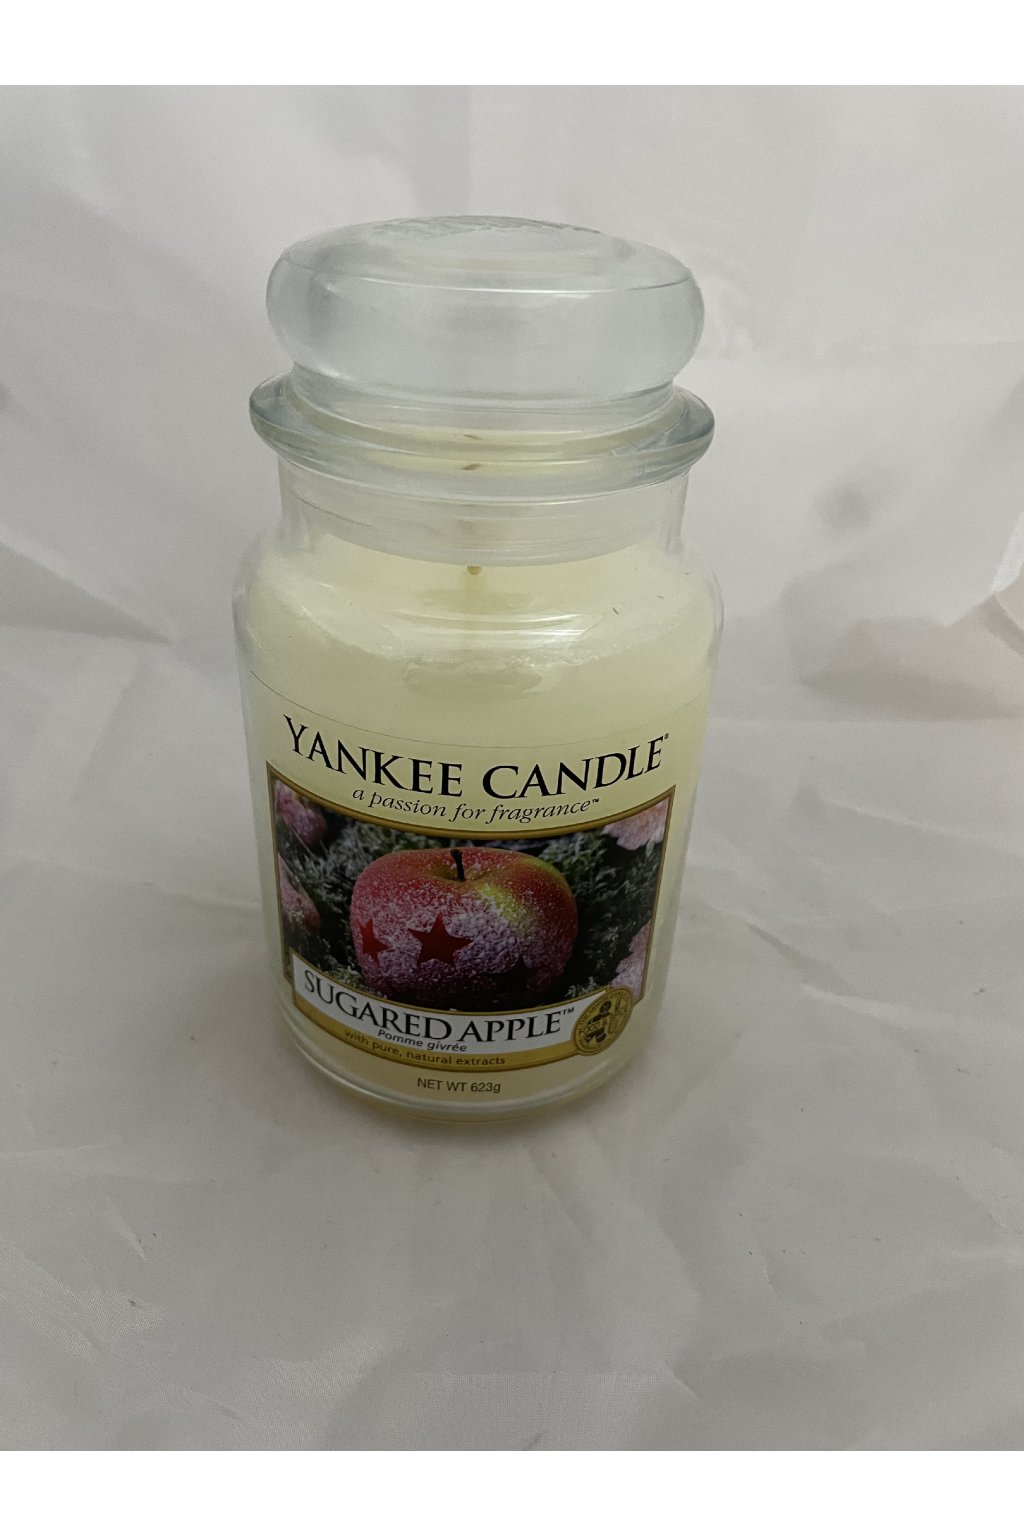 Yankee Candle Sugared Apple 623g 2013